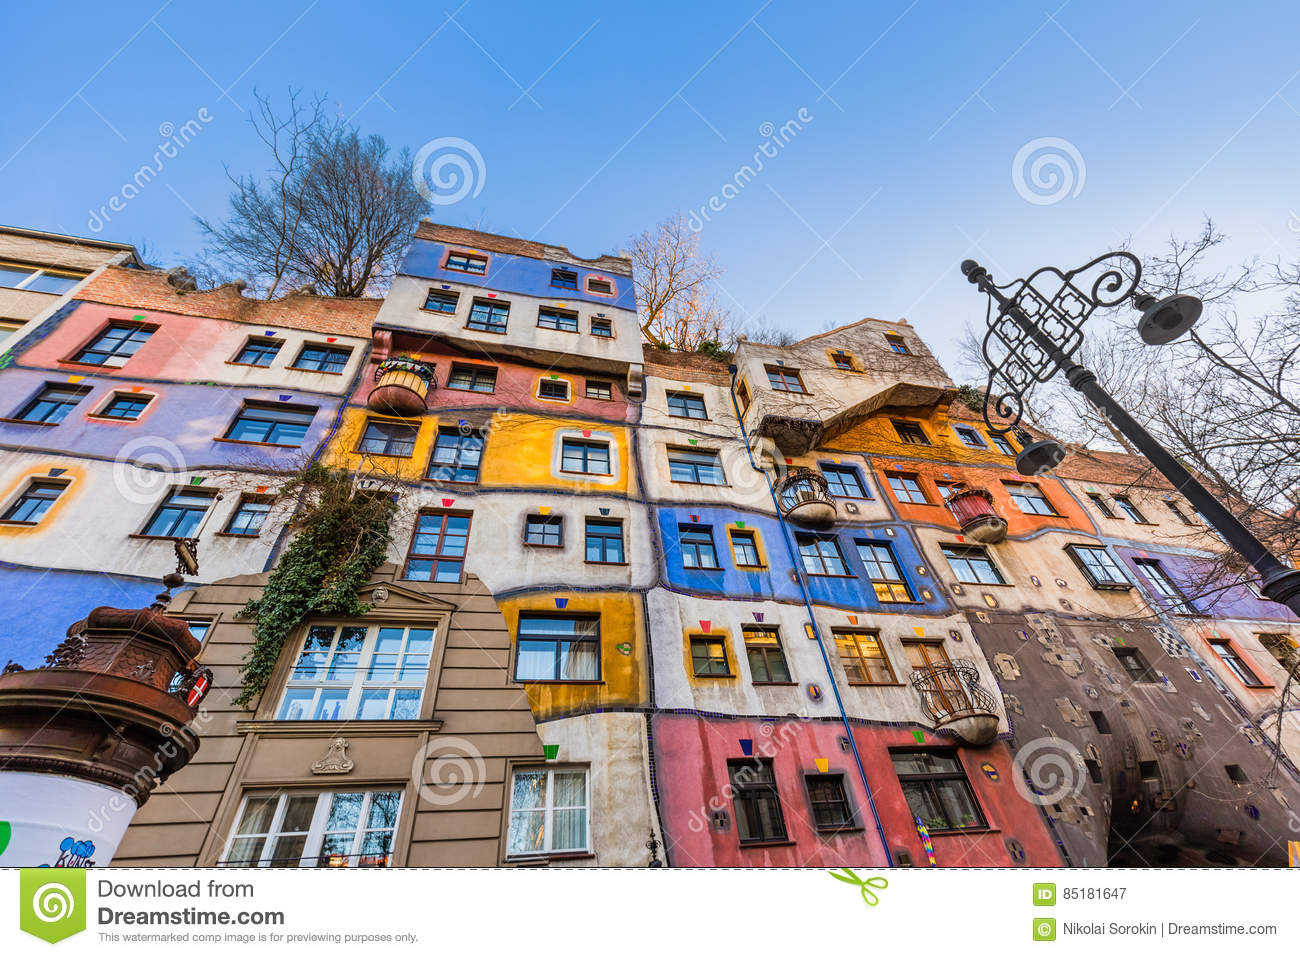 Hundertwasser House In Vienna Austria Stock Image - Image of colorful, decoration: 85181647